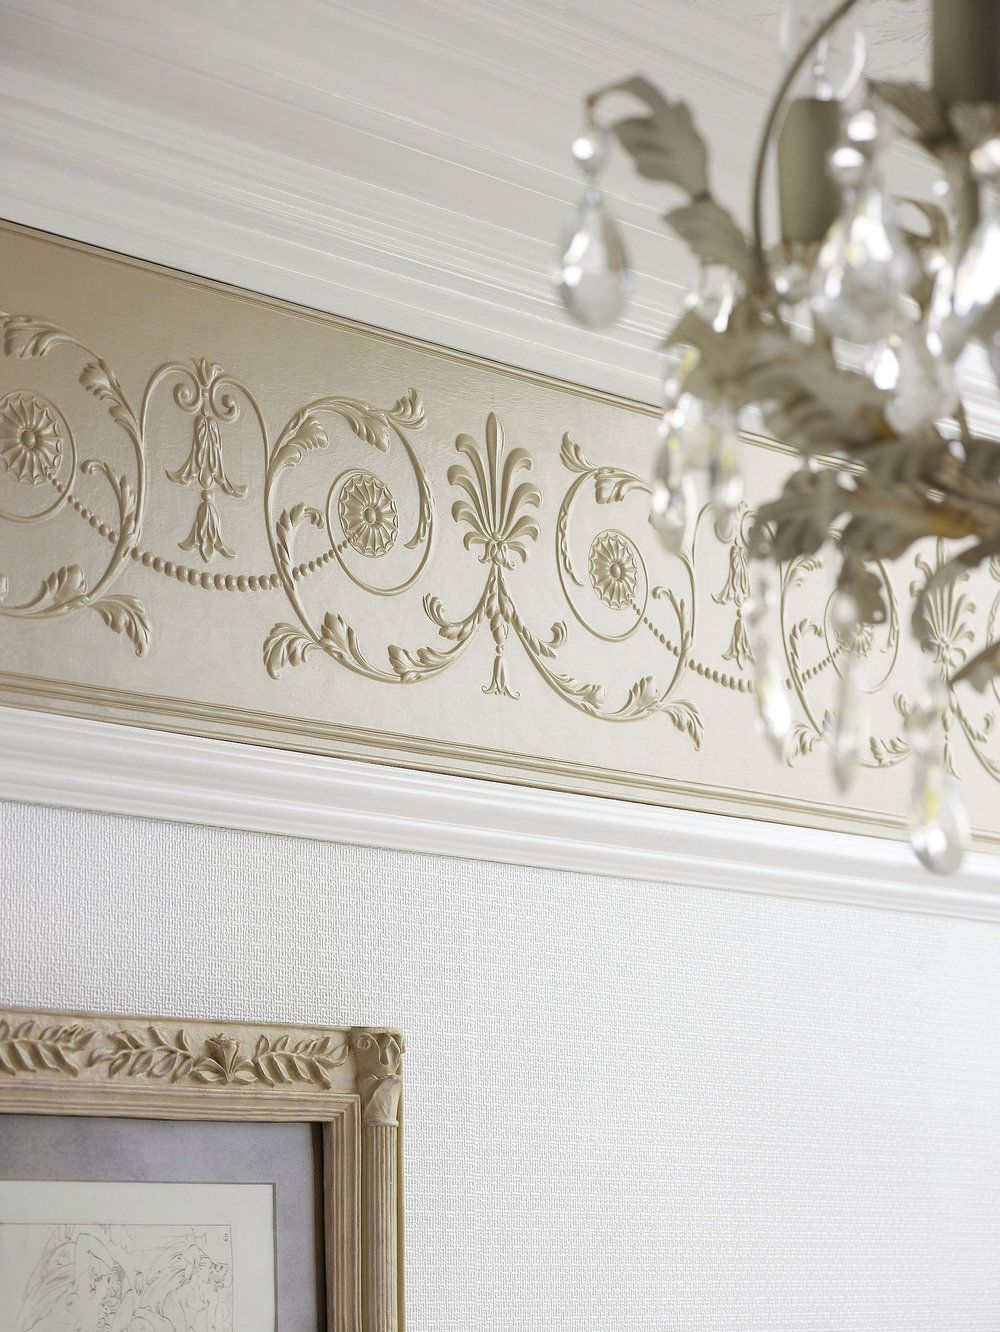 Diana Frieze By Lincrusta Paintable Border Wallpaper Direct Wall Stickers Living Room Living Room Wallpaper Border Classic Home Decor